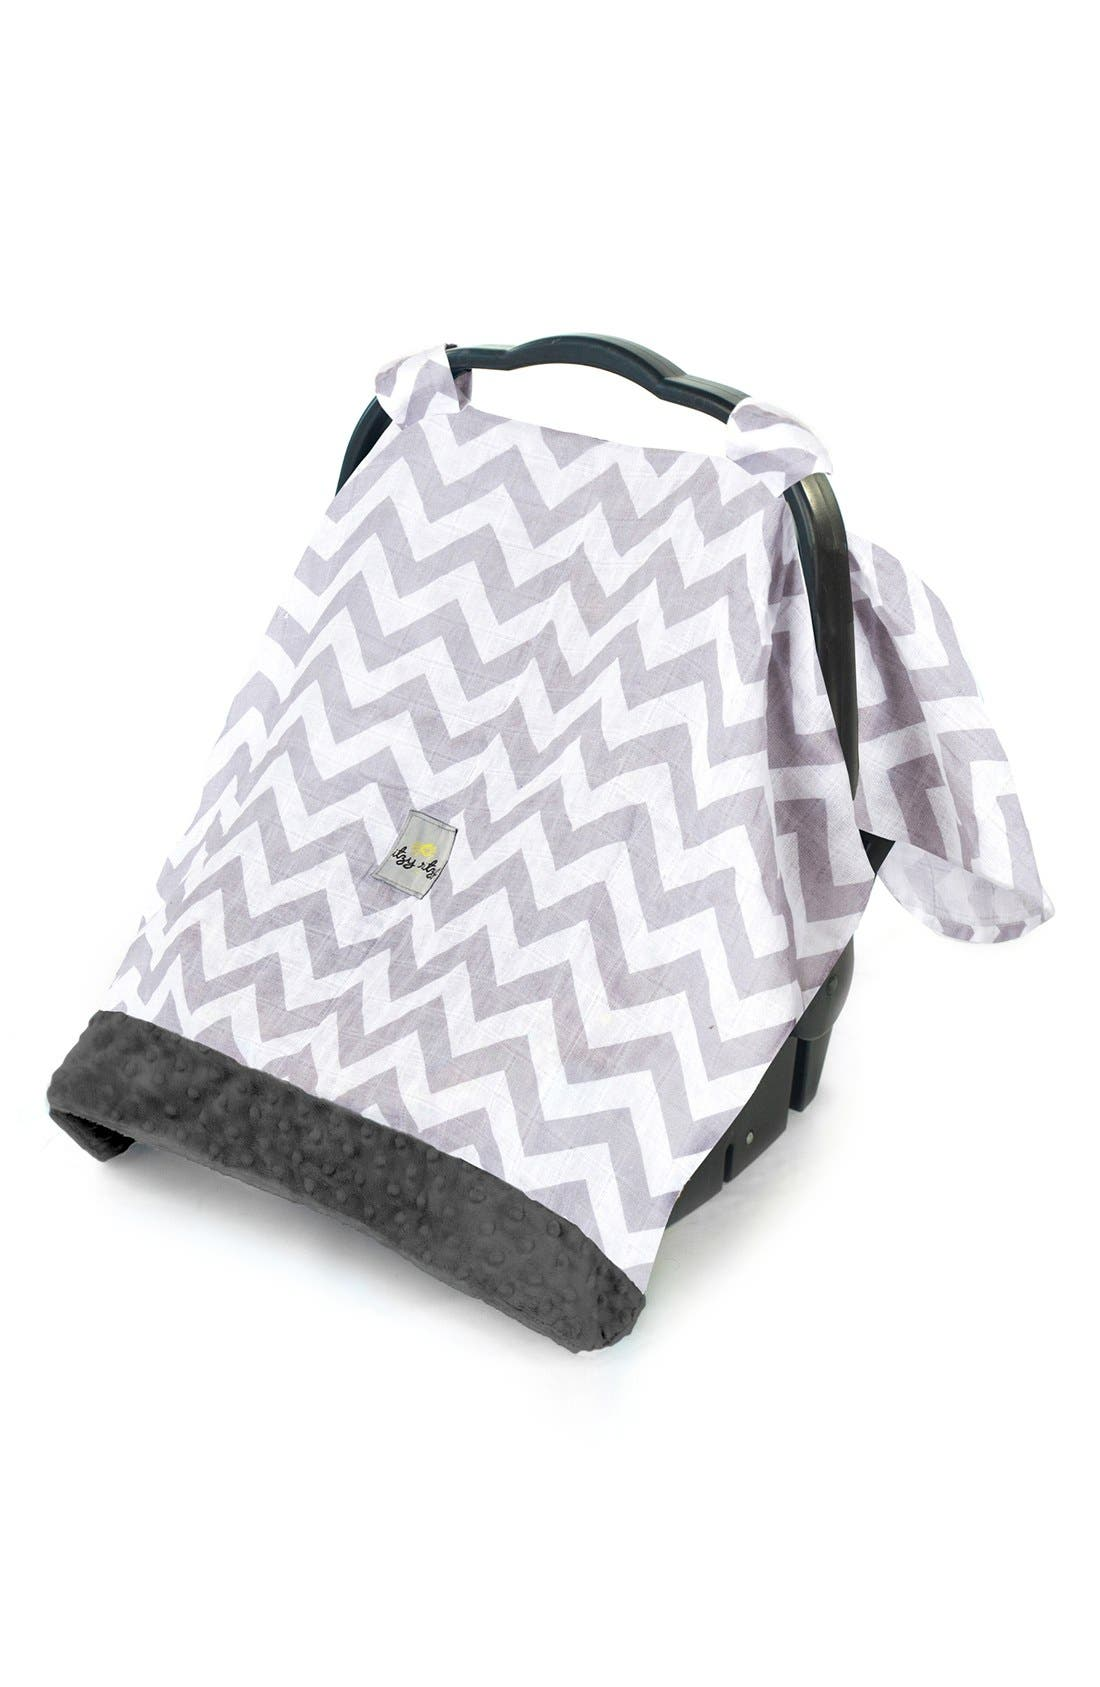 Itzy Ritzy 'Cozy Happens™' Muslin Canopy & Tummy Time Mat